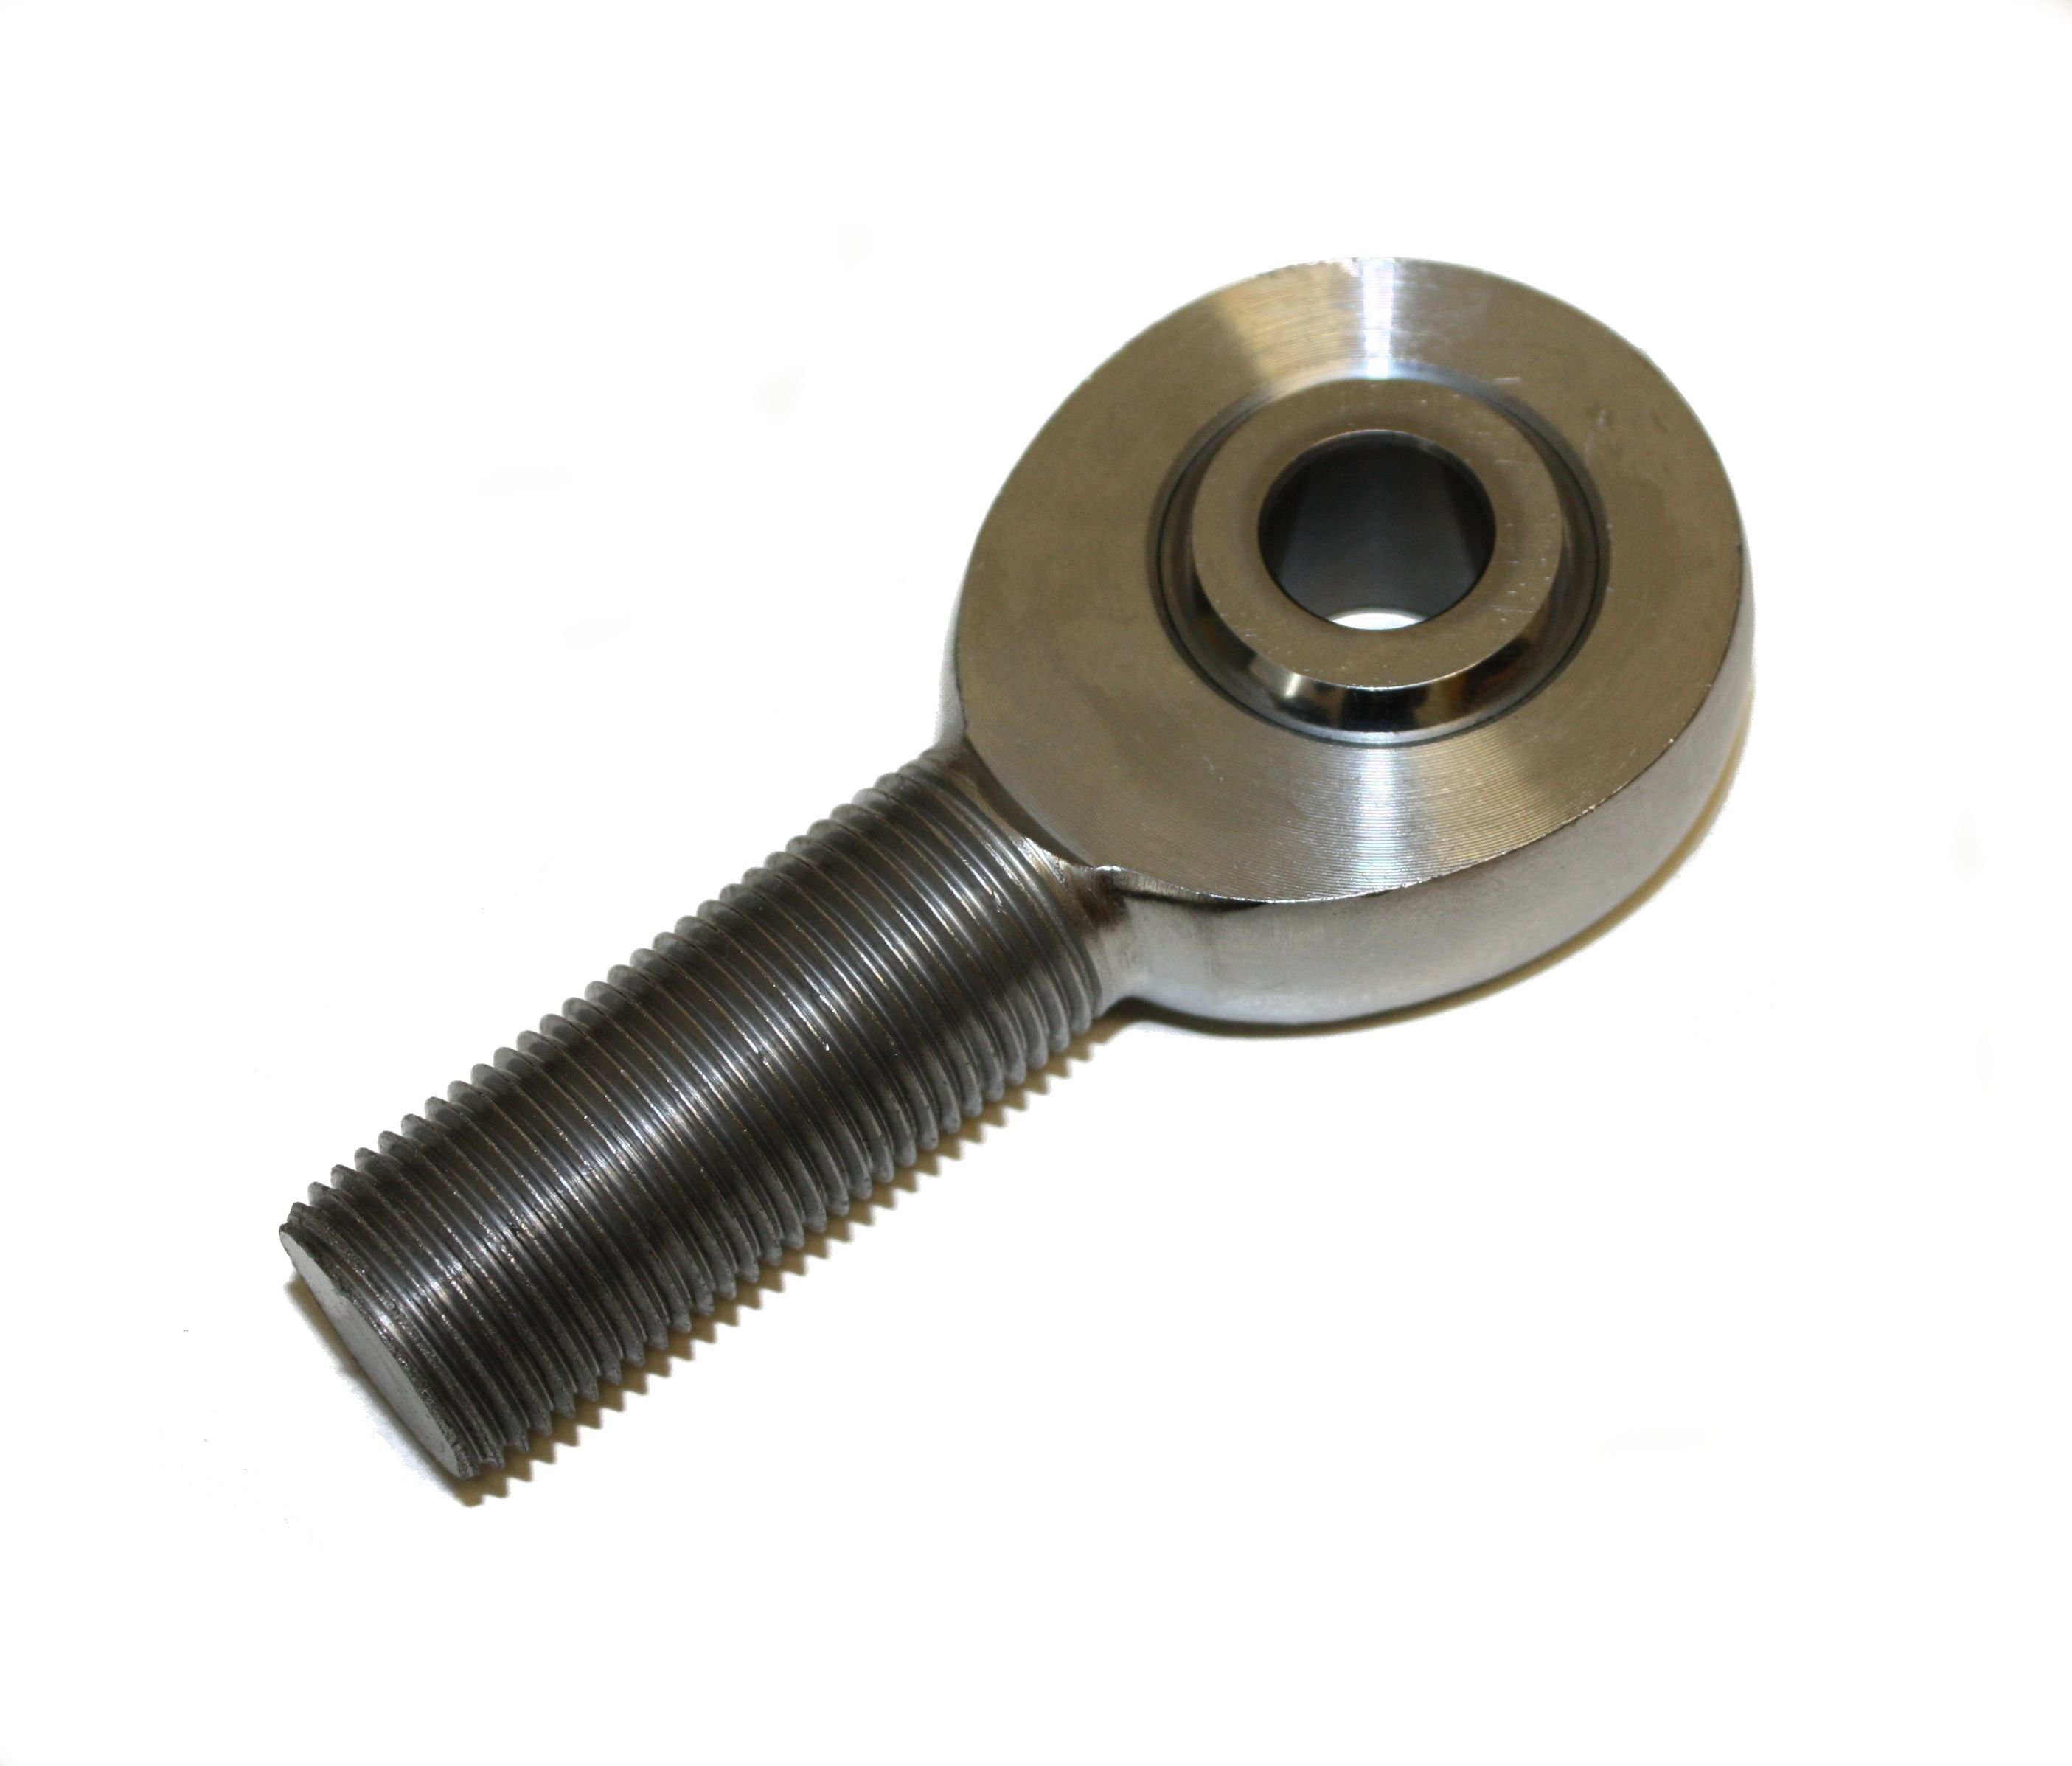 "Spherical Rod End, 3/4-16 Thread, 1/2"" Hole"